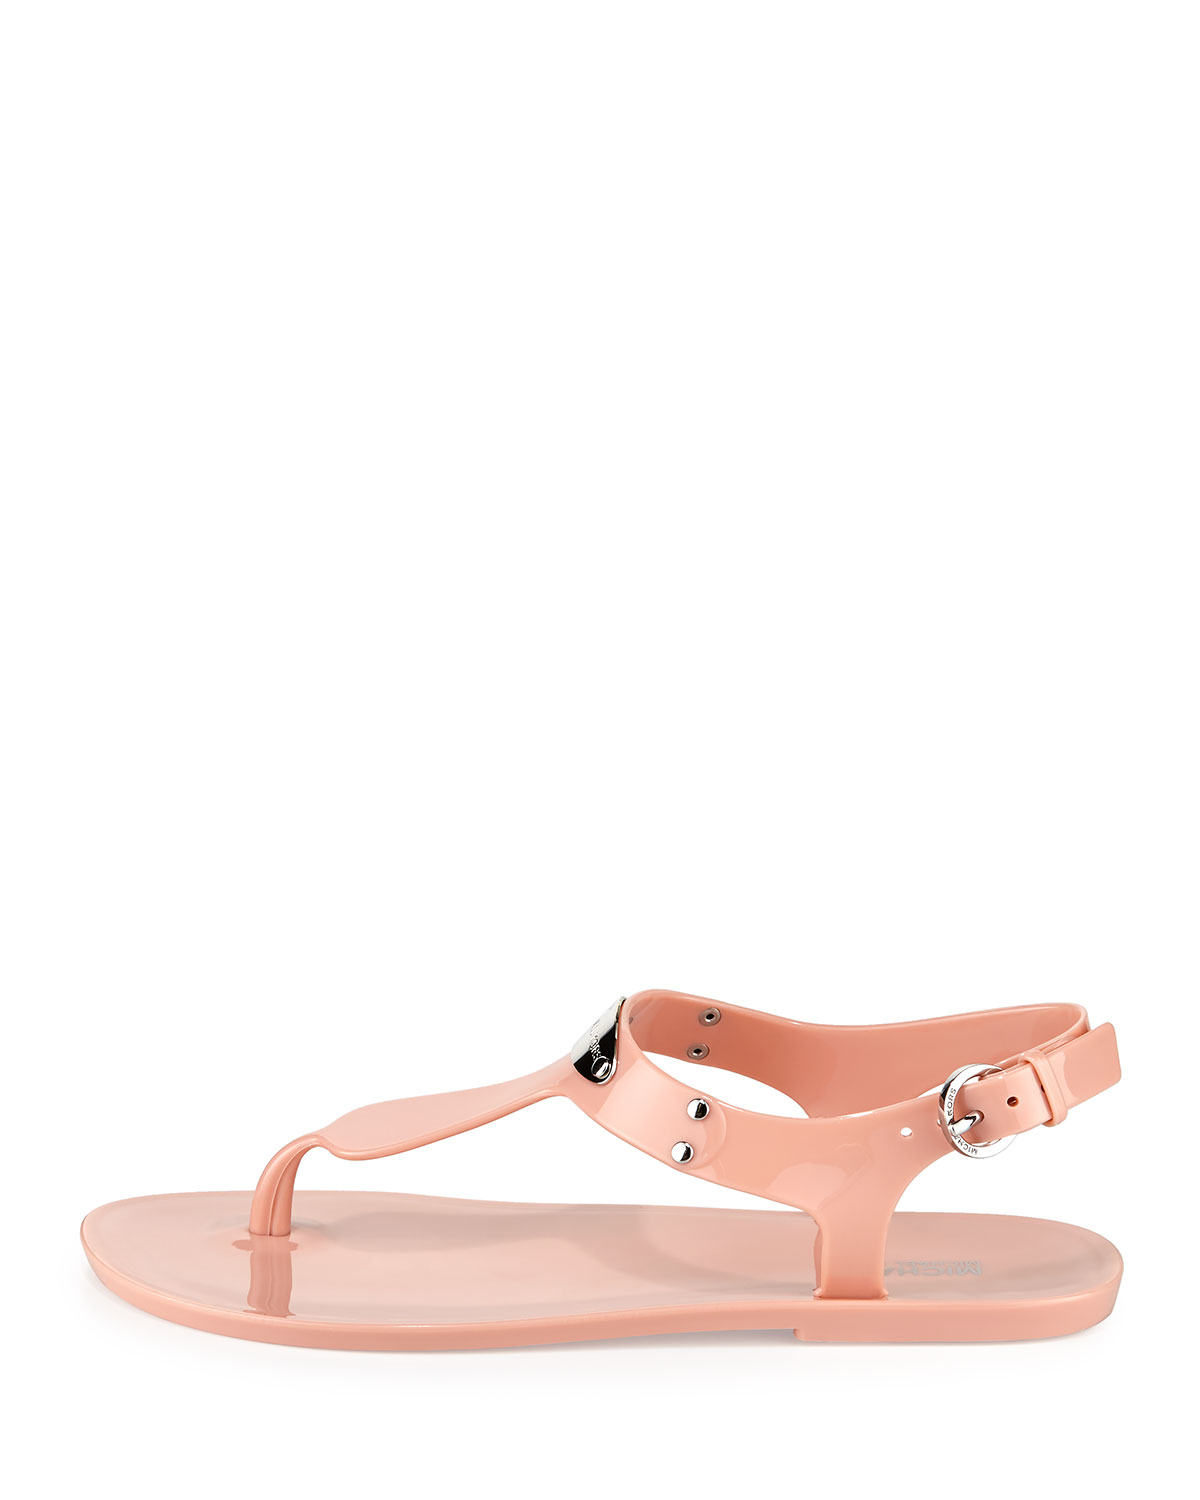 8c8be739656 Lyst - MICHAEL Michael Kors Logo-Plate PVC Sandals in Pink